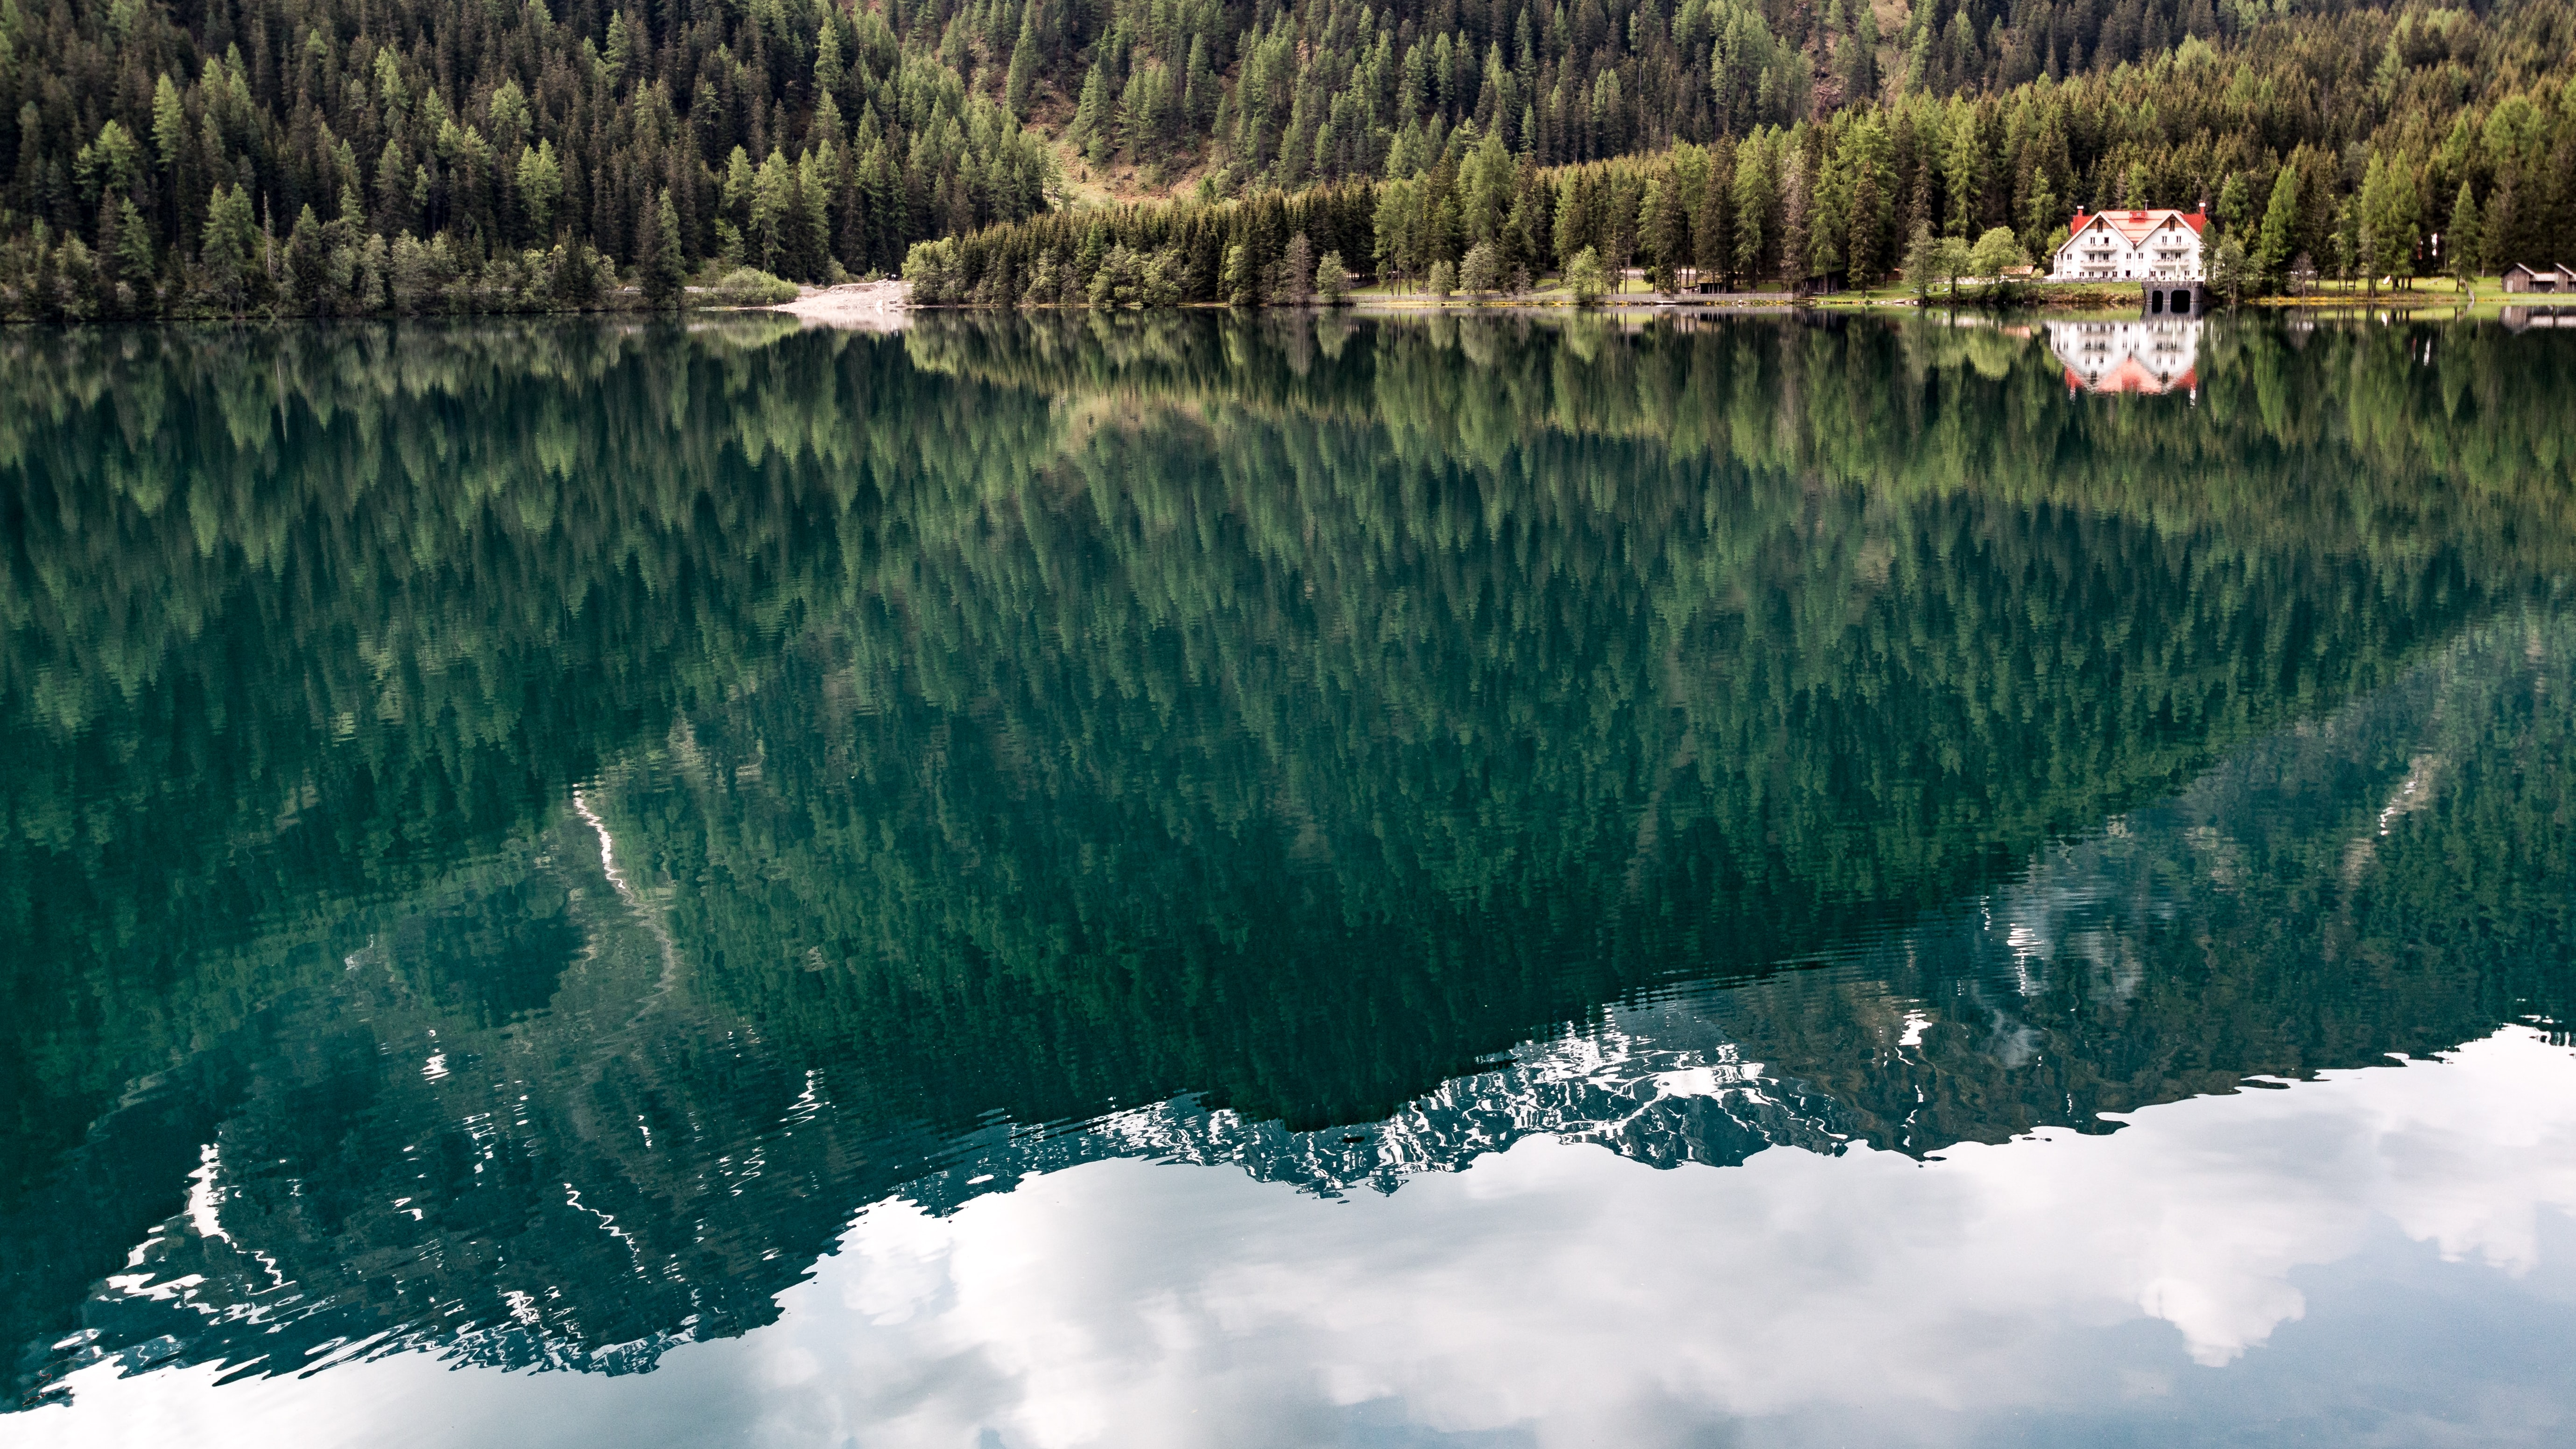 Mountains reflected in an emerald-green surface of a lake